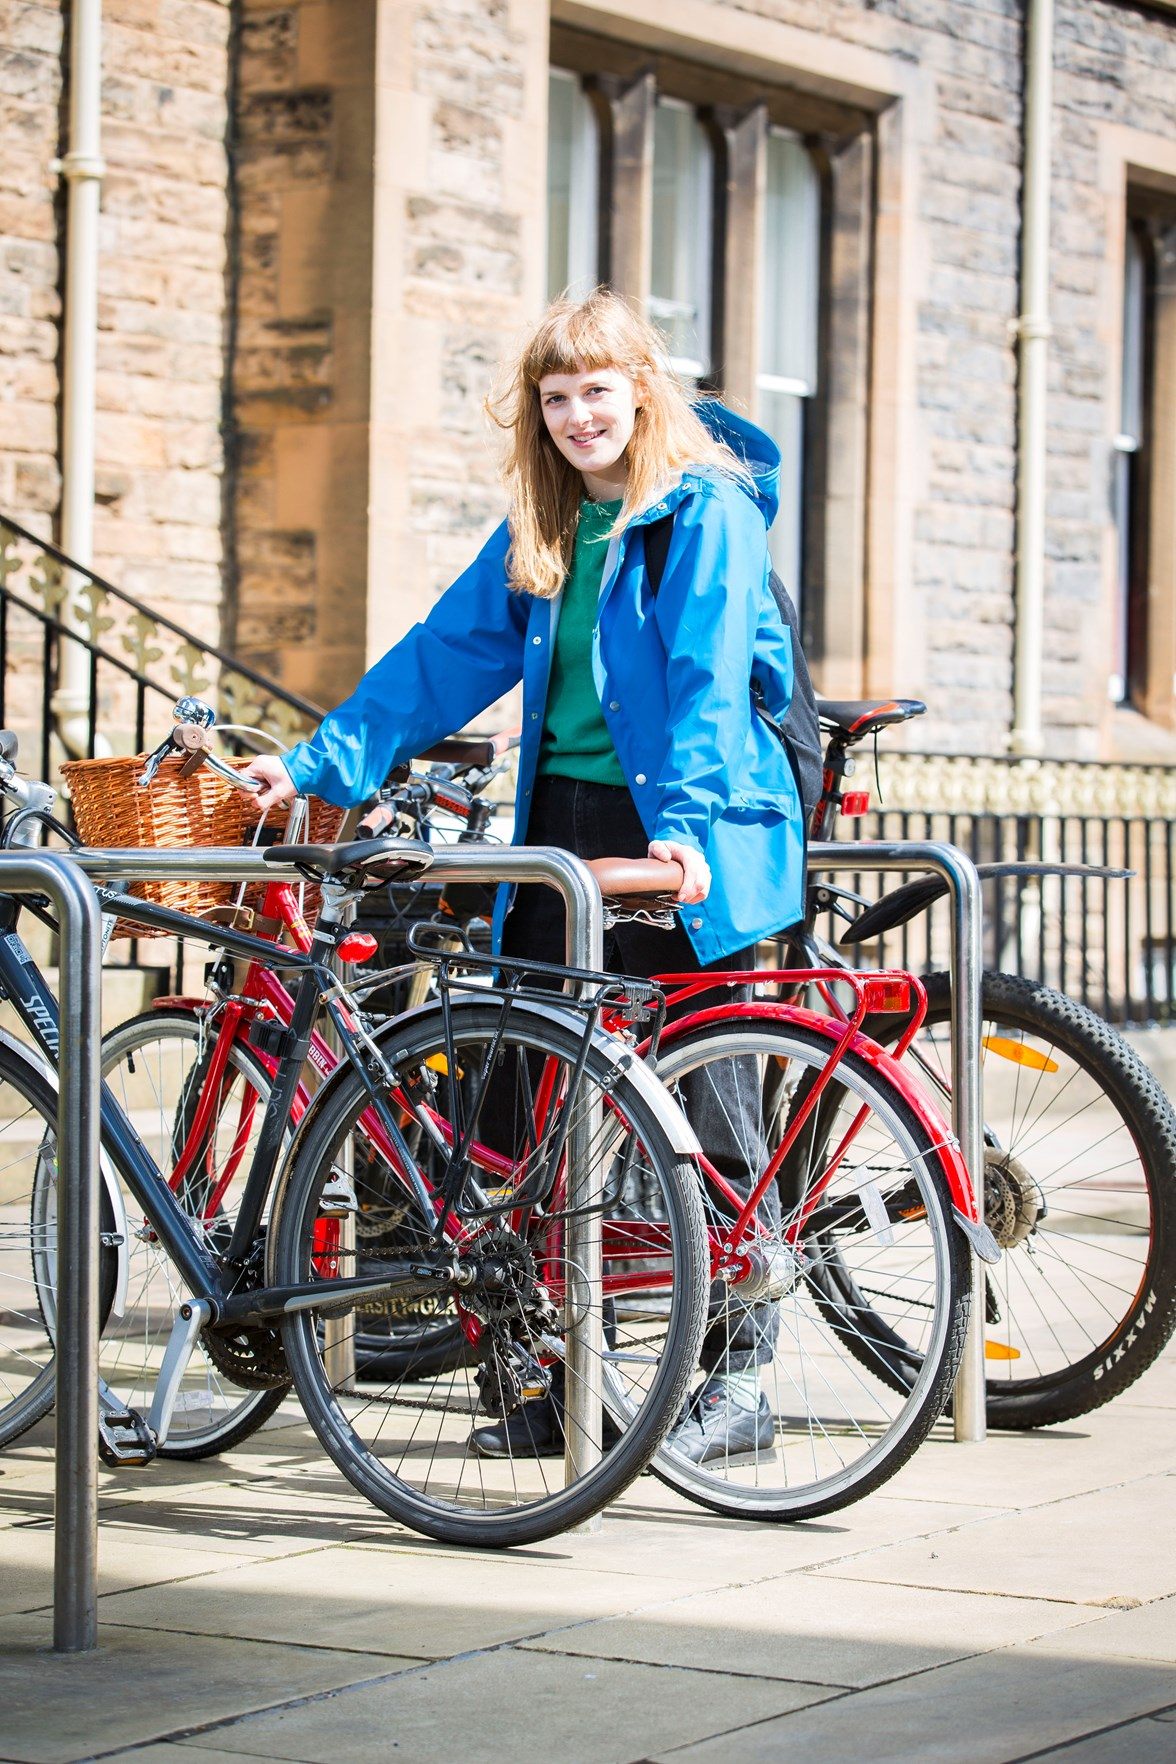 University of Glasgow - Cycle Friendly improvements